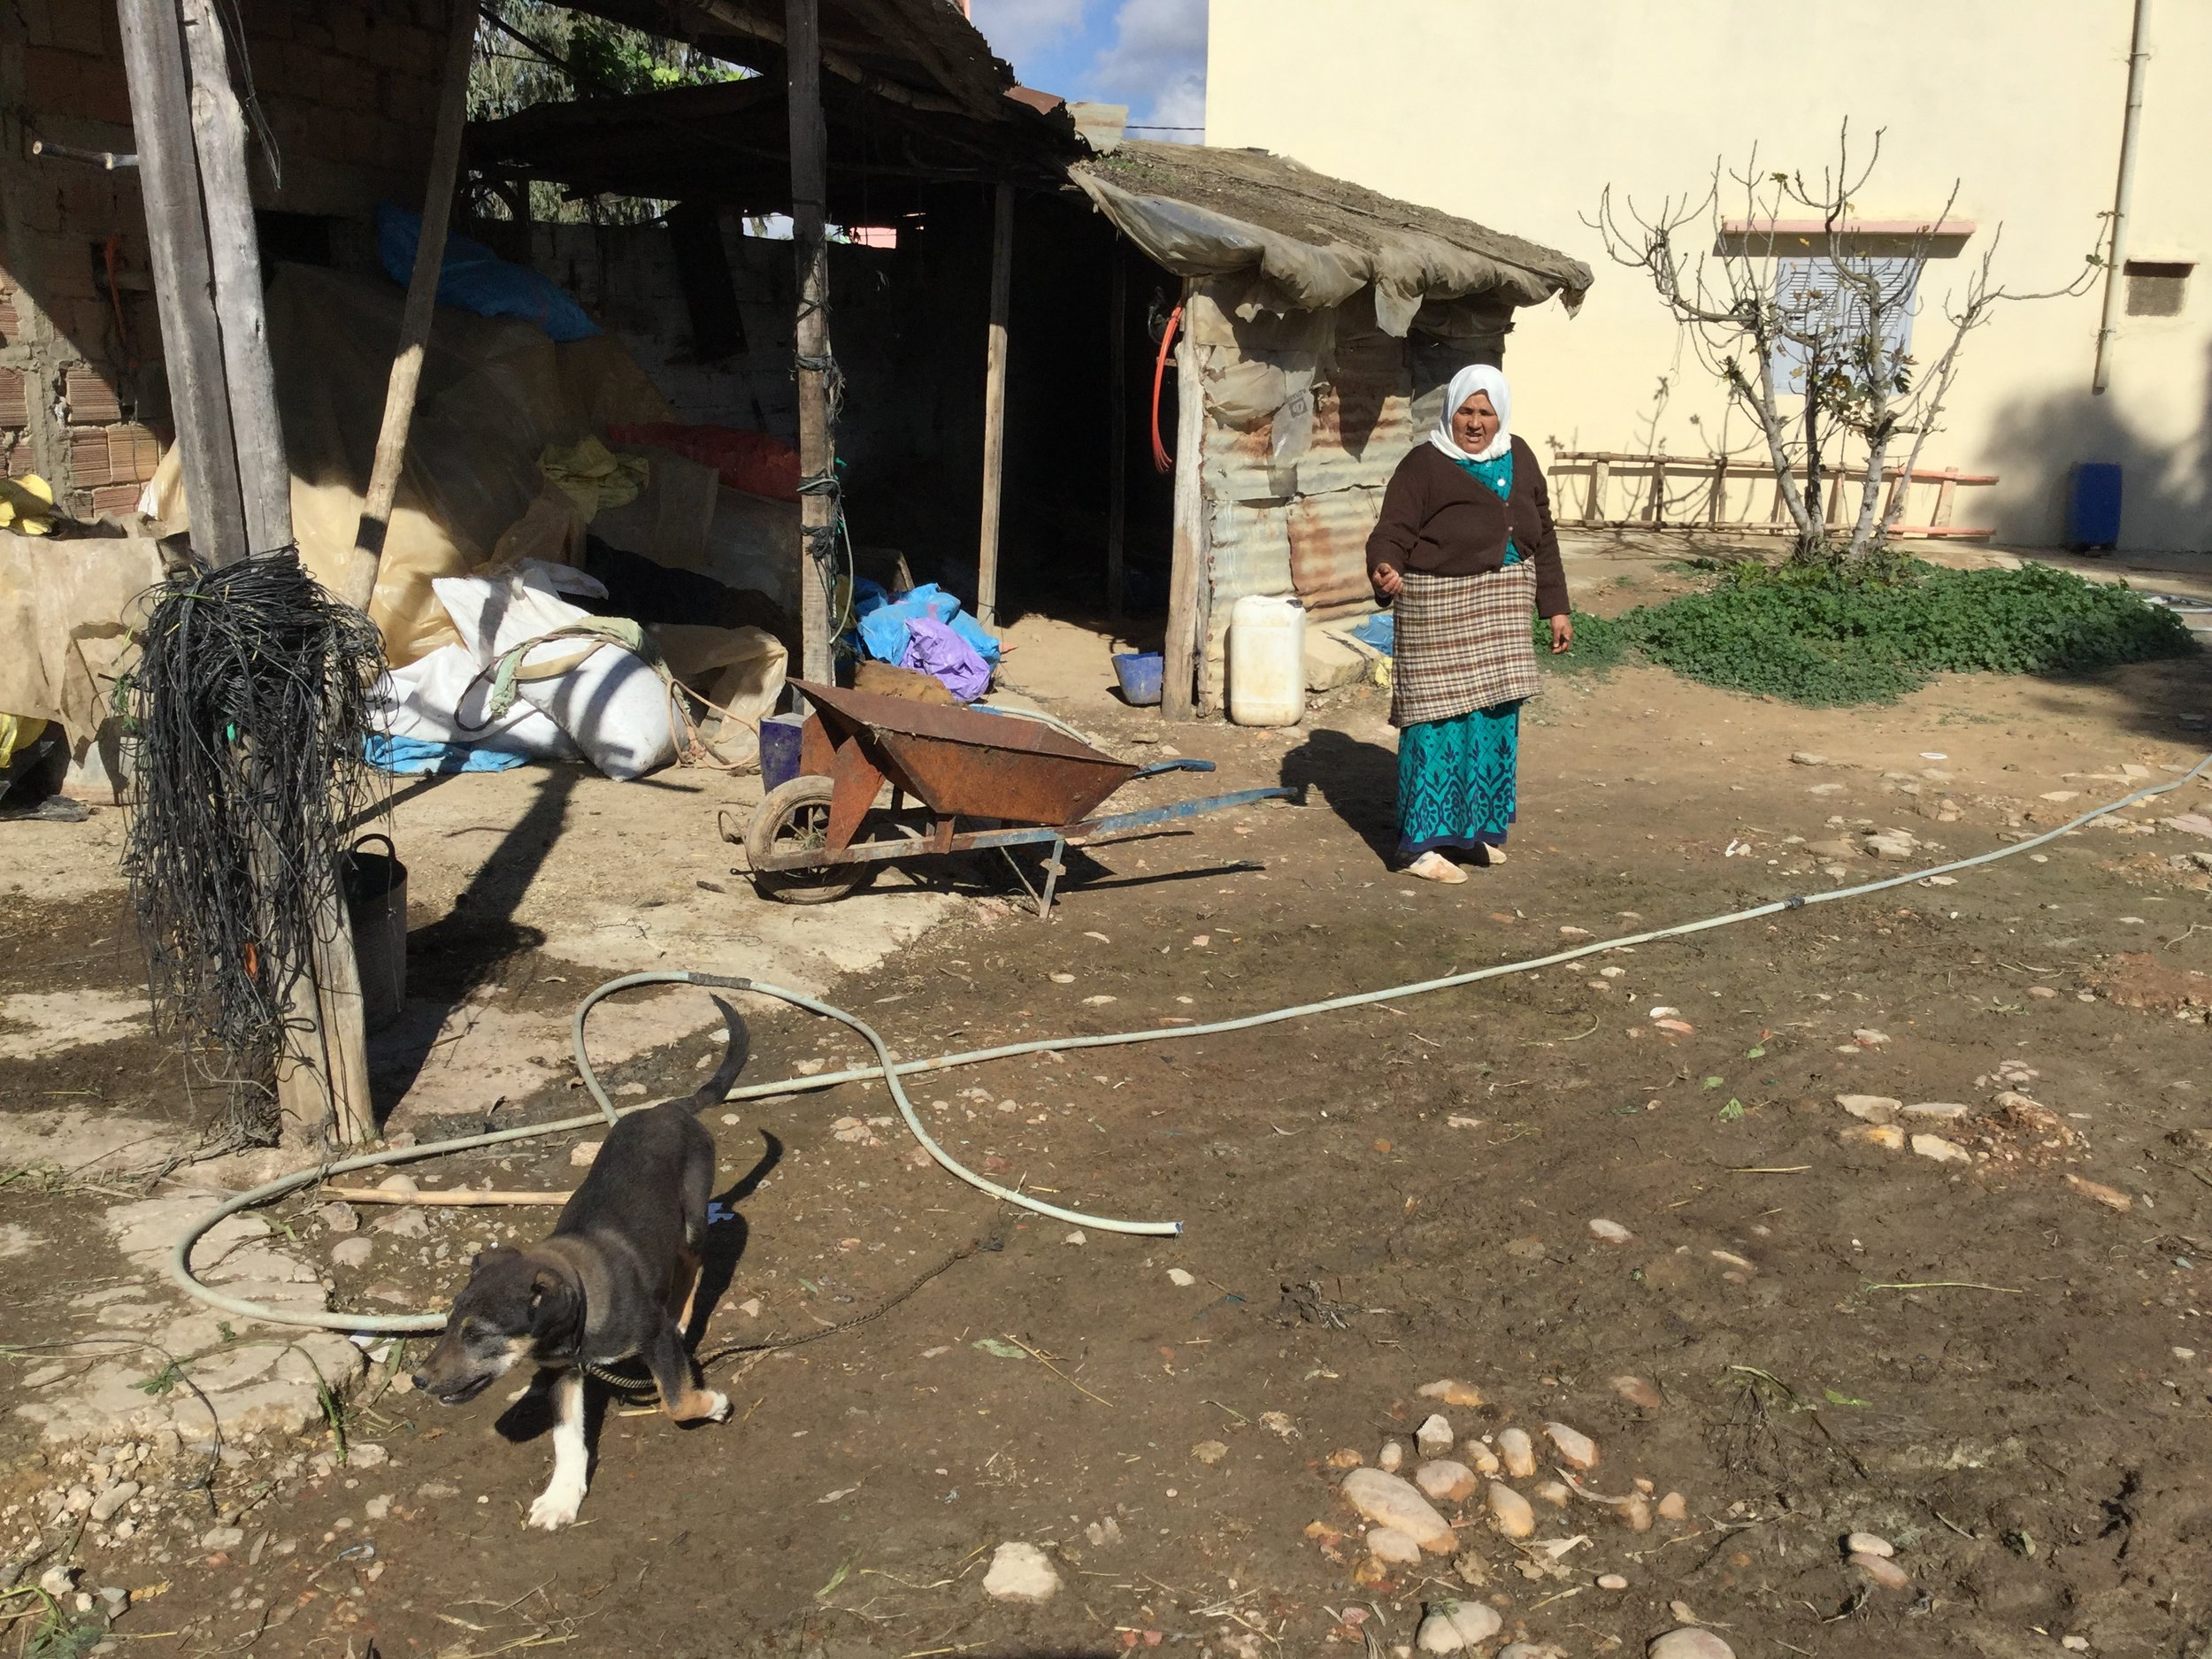 In the courtyard - the woman is Abdou's sister Nijjat, and the dog is called Jack.